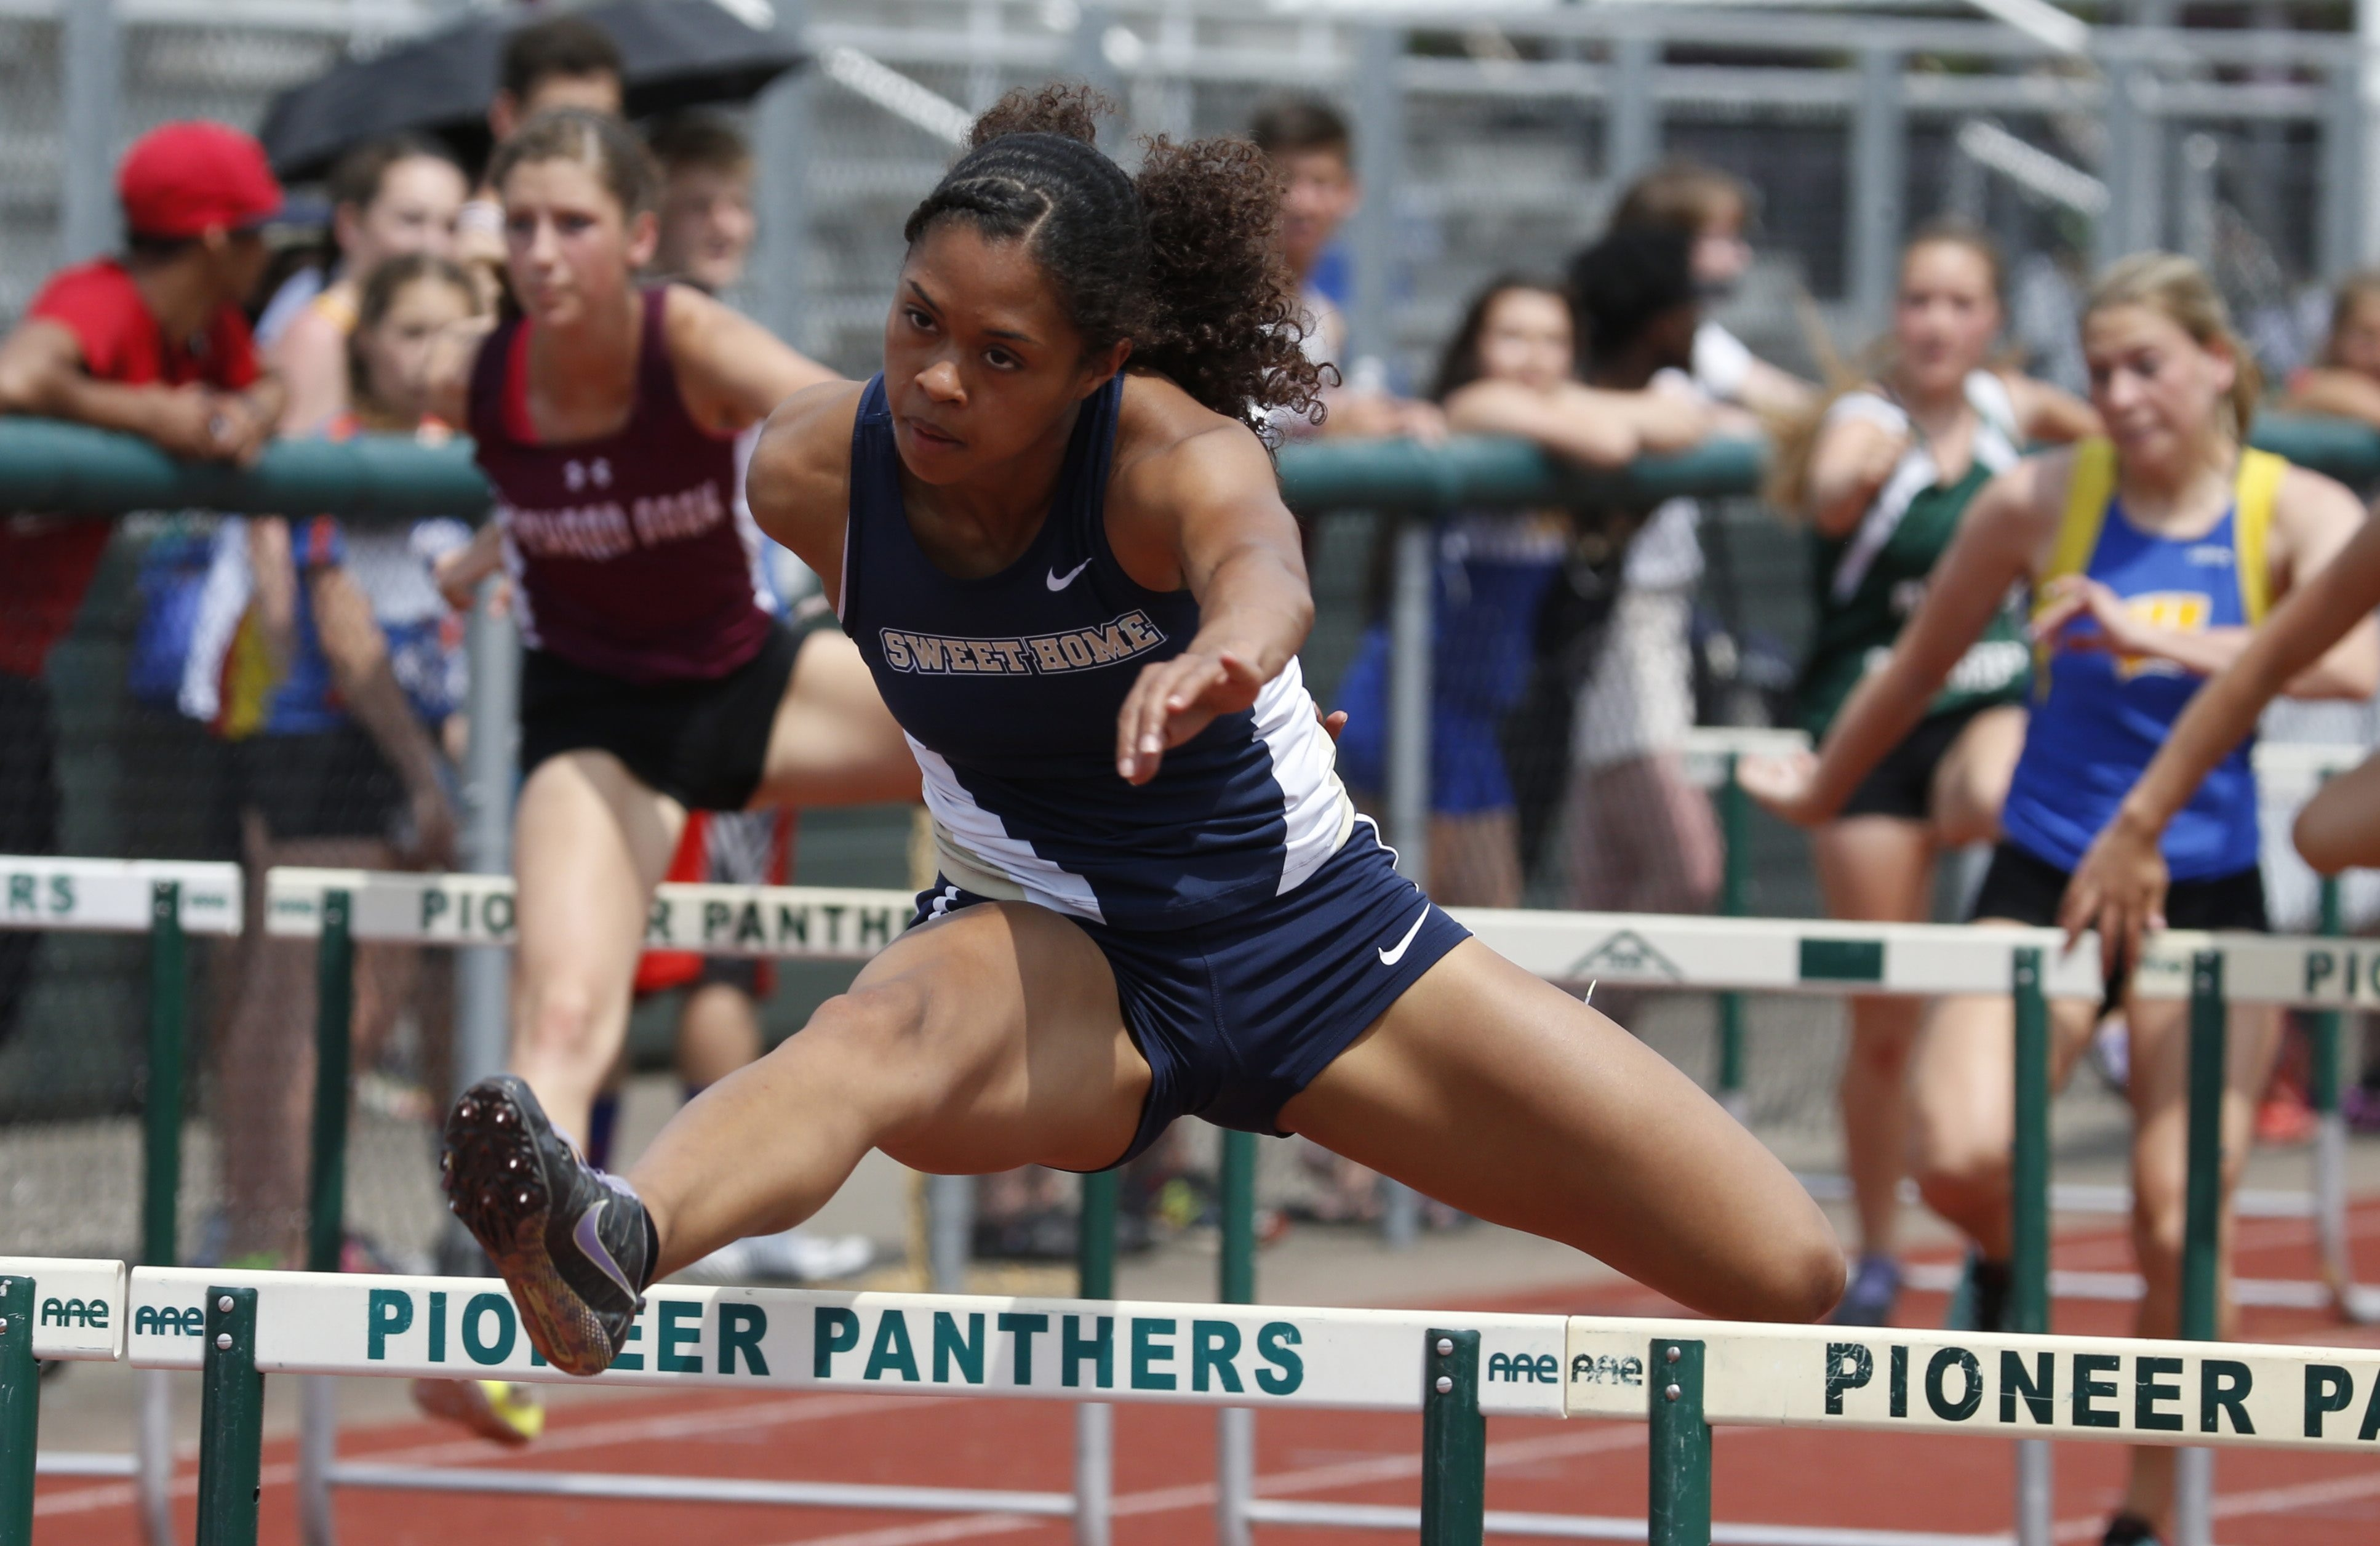 Sweet Home's Tiana Luton shelved her specialty, the pentathlon, to compete in (and win) four individual events.